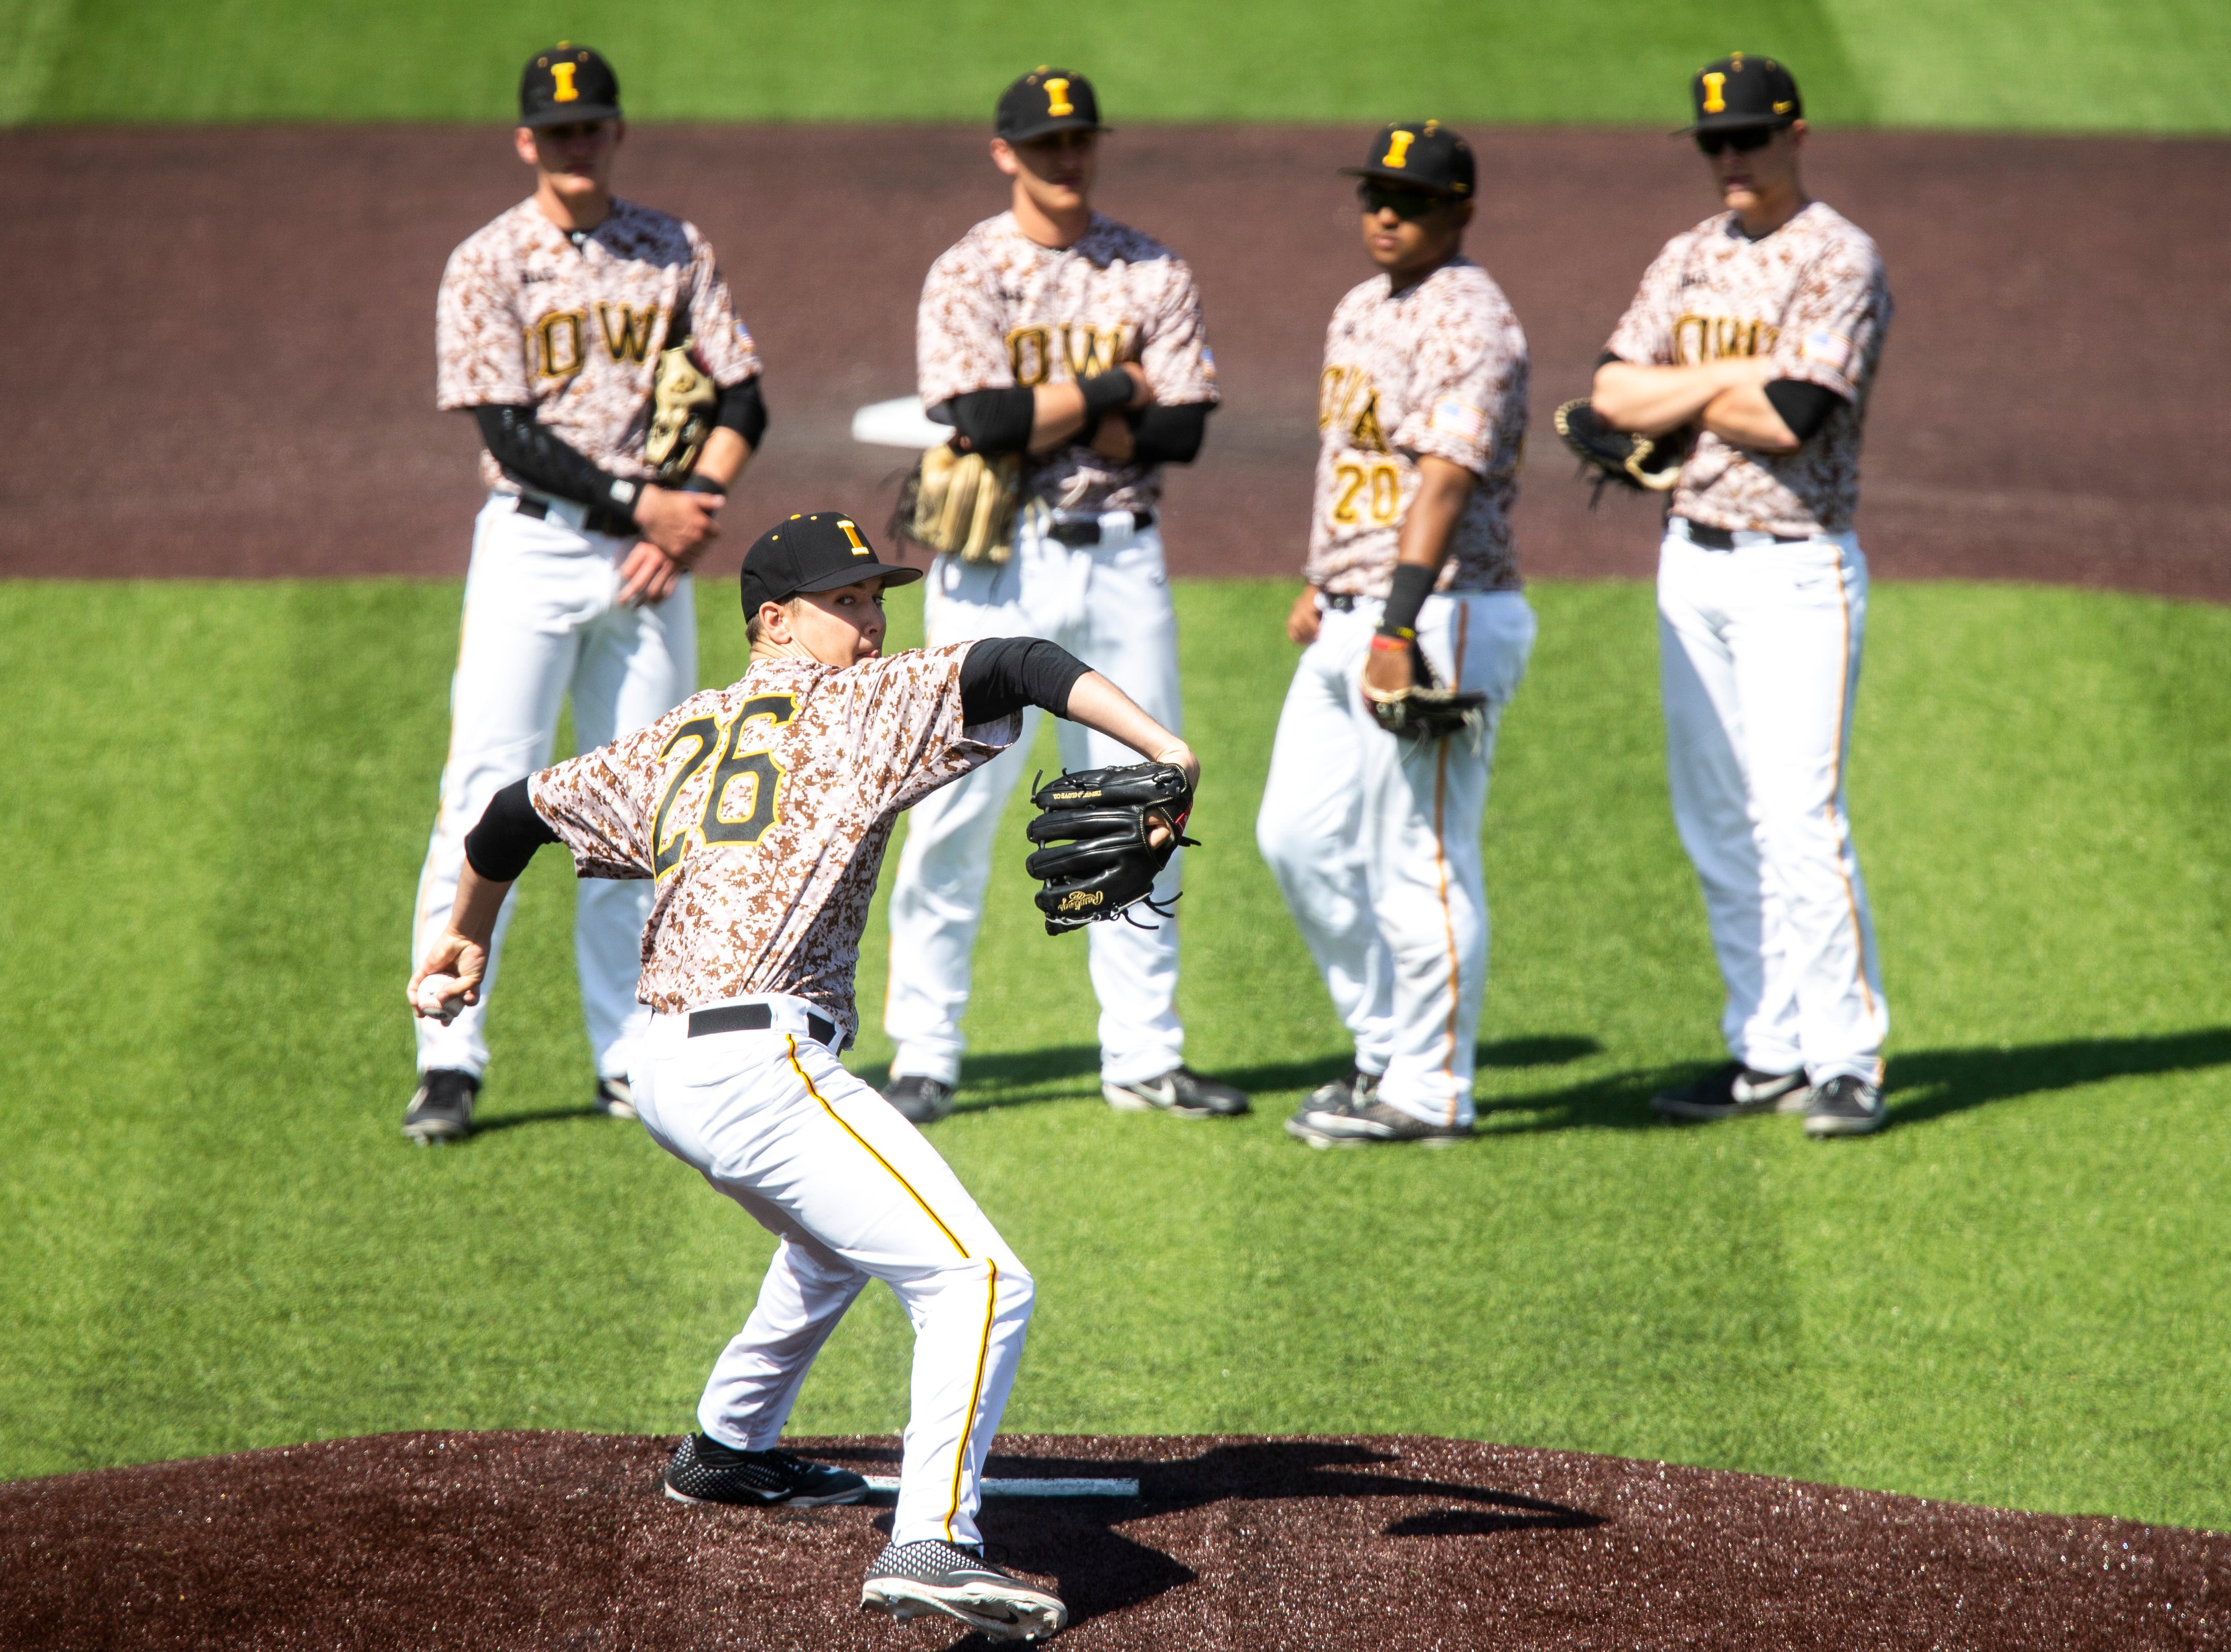 Iowa pitcher Adam Ketelsen (26) warms up during a NCAA non conference baseball game, Sunday, May 5, 2019, at Duane Banks Field in Iowa City, Iowa.